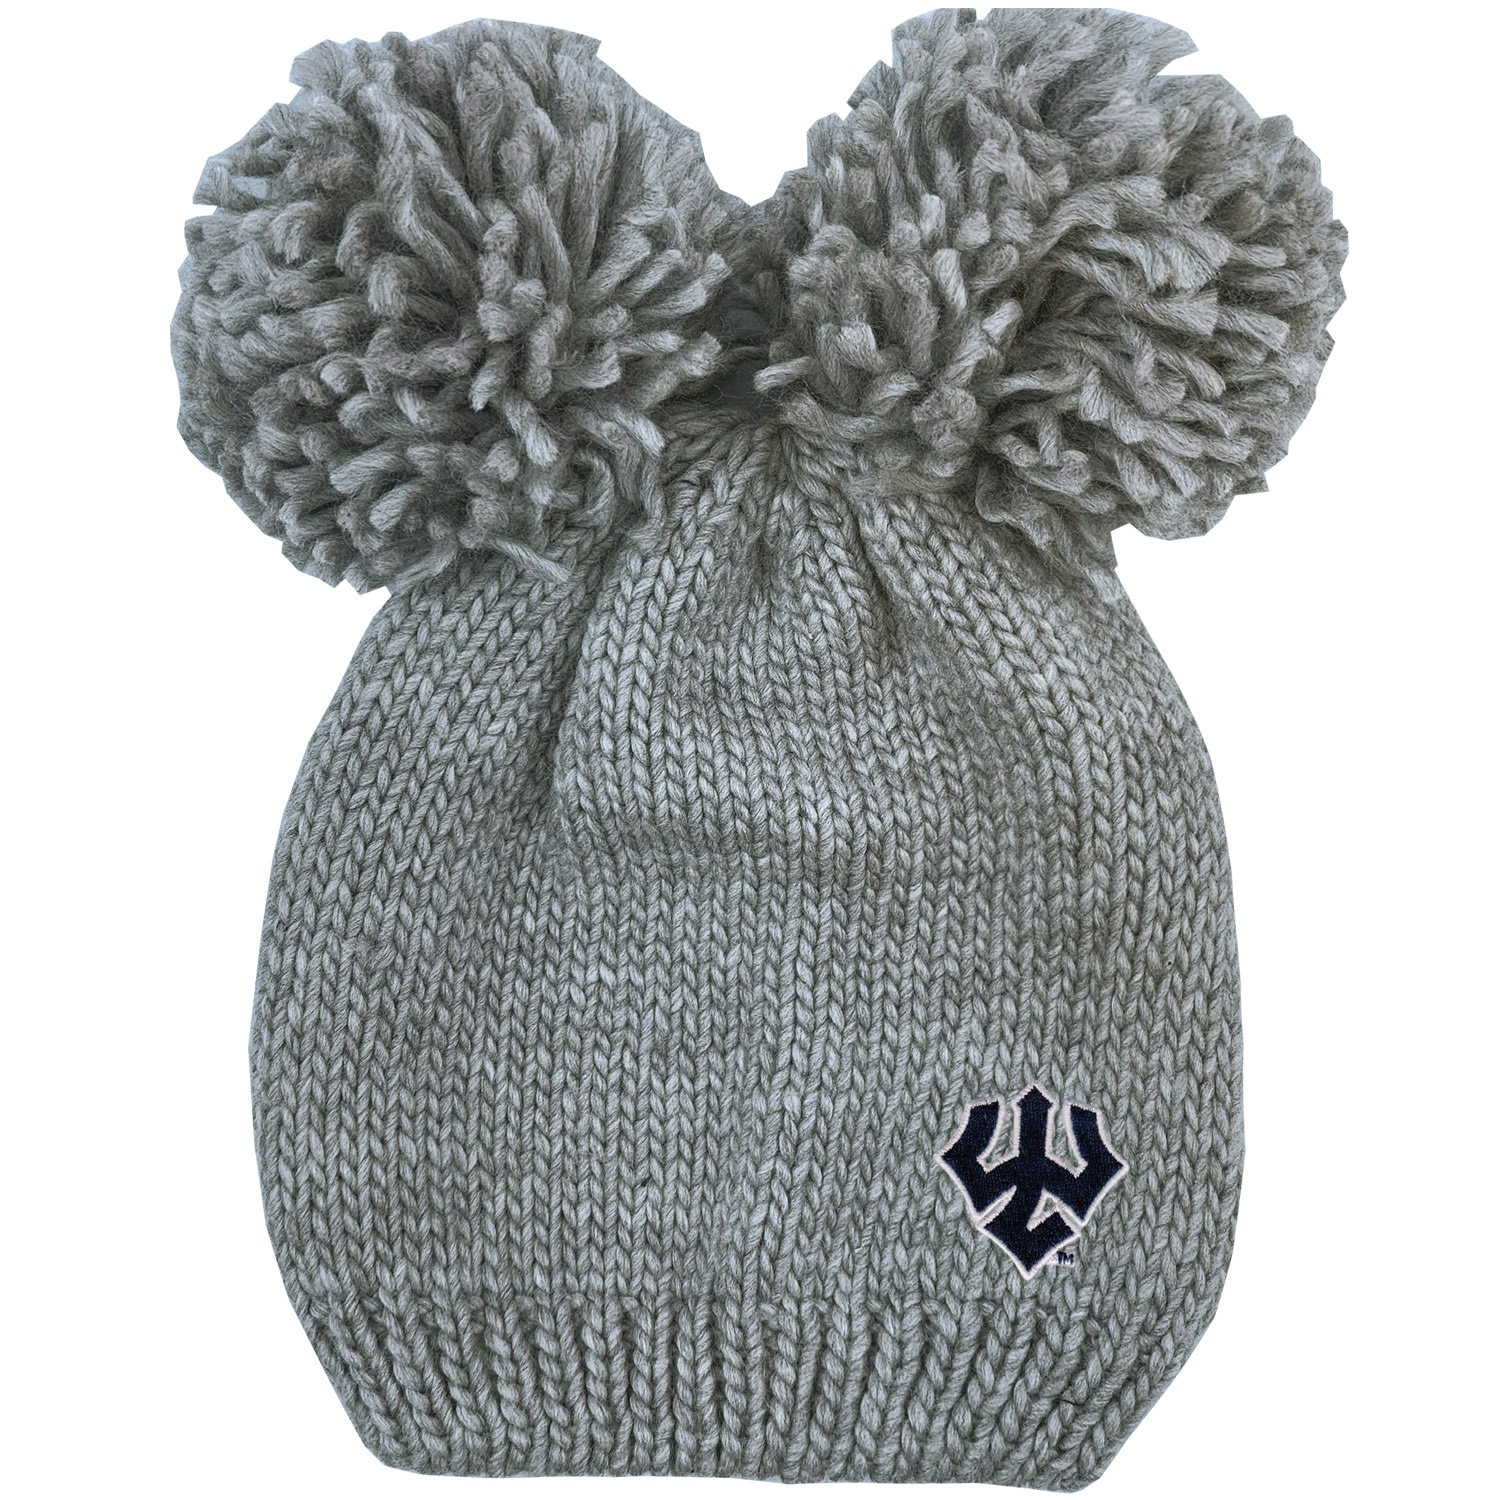 Cover Image For Leia Double Pom Hat